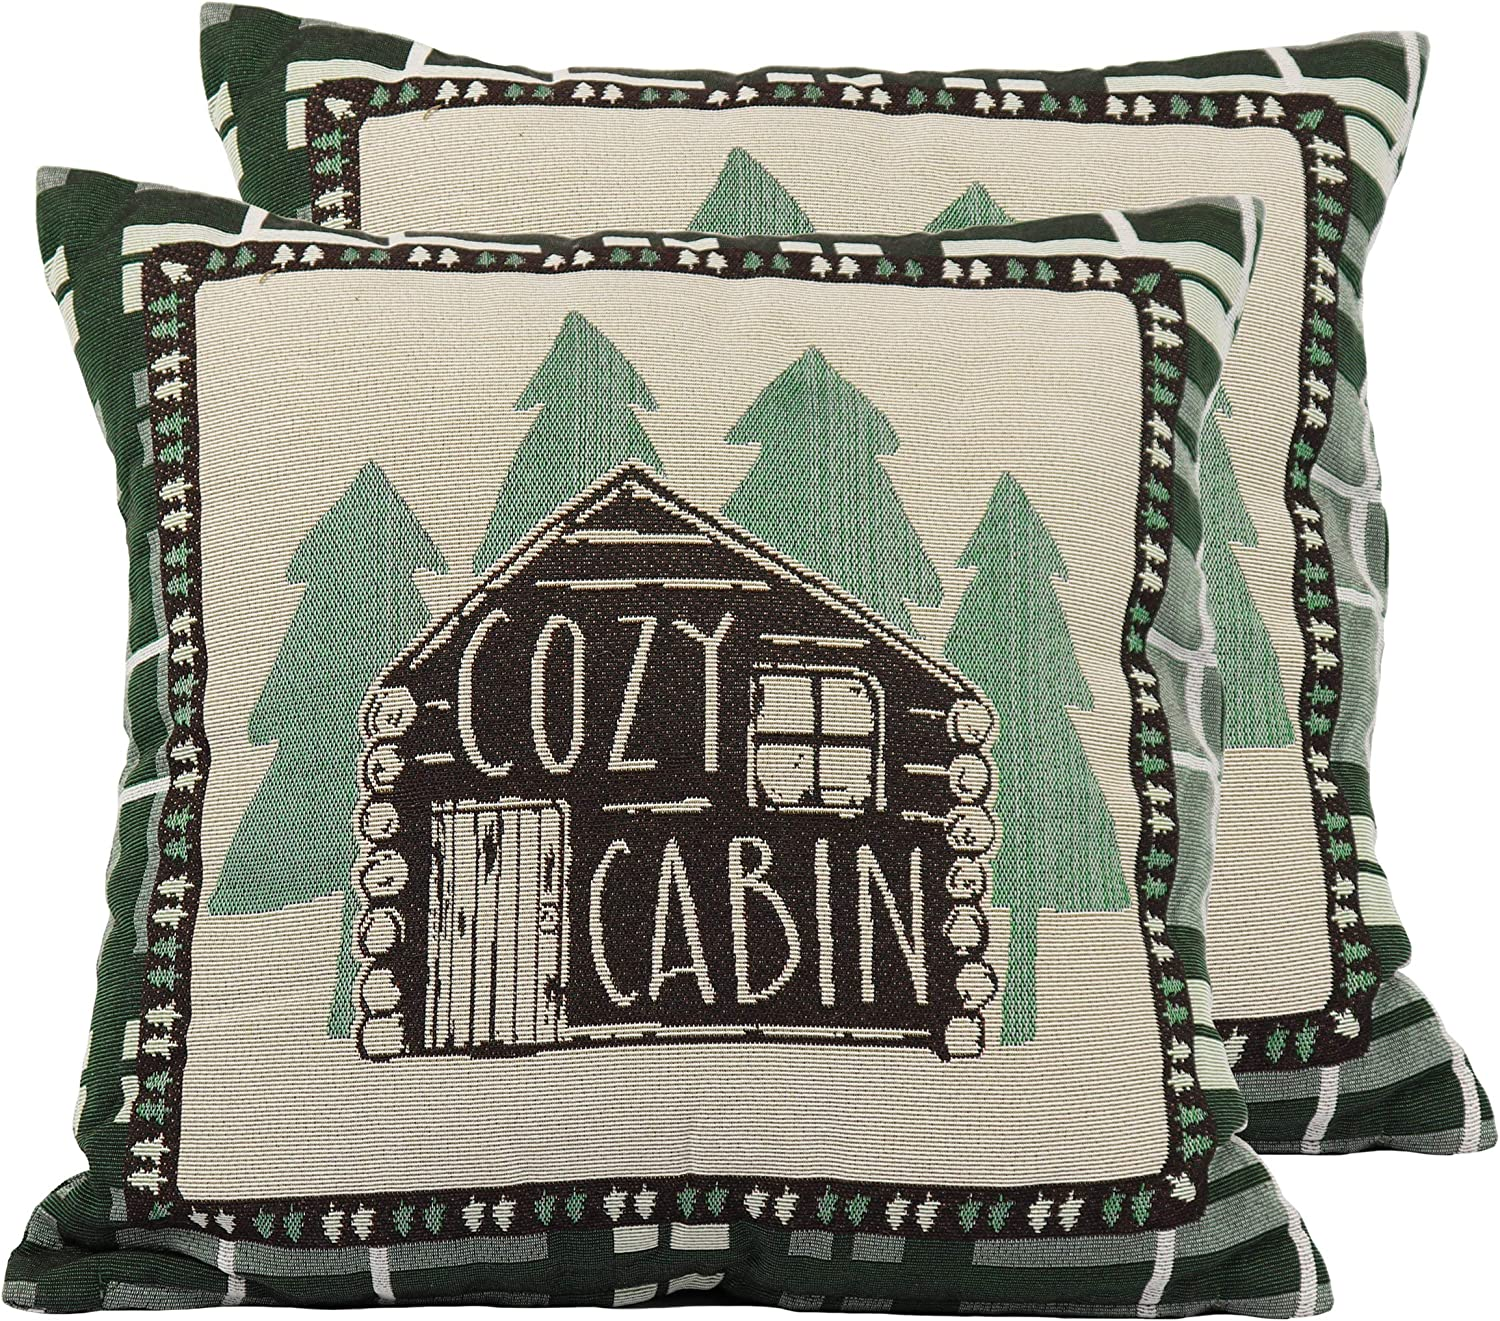 River S Edge Products Cabin Tapestry Throw Pillows Pair With Removable Covers 18 By 18 Inch Square Clothing